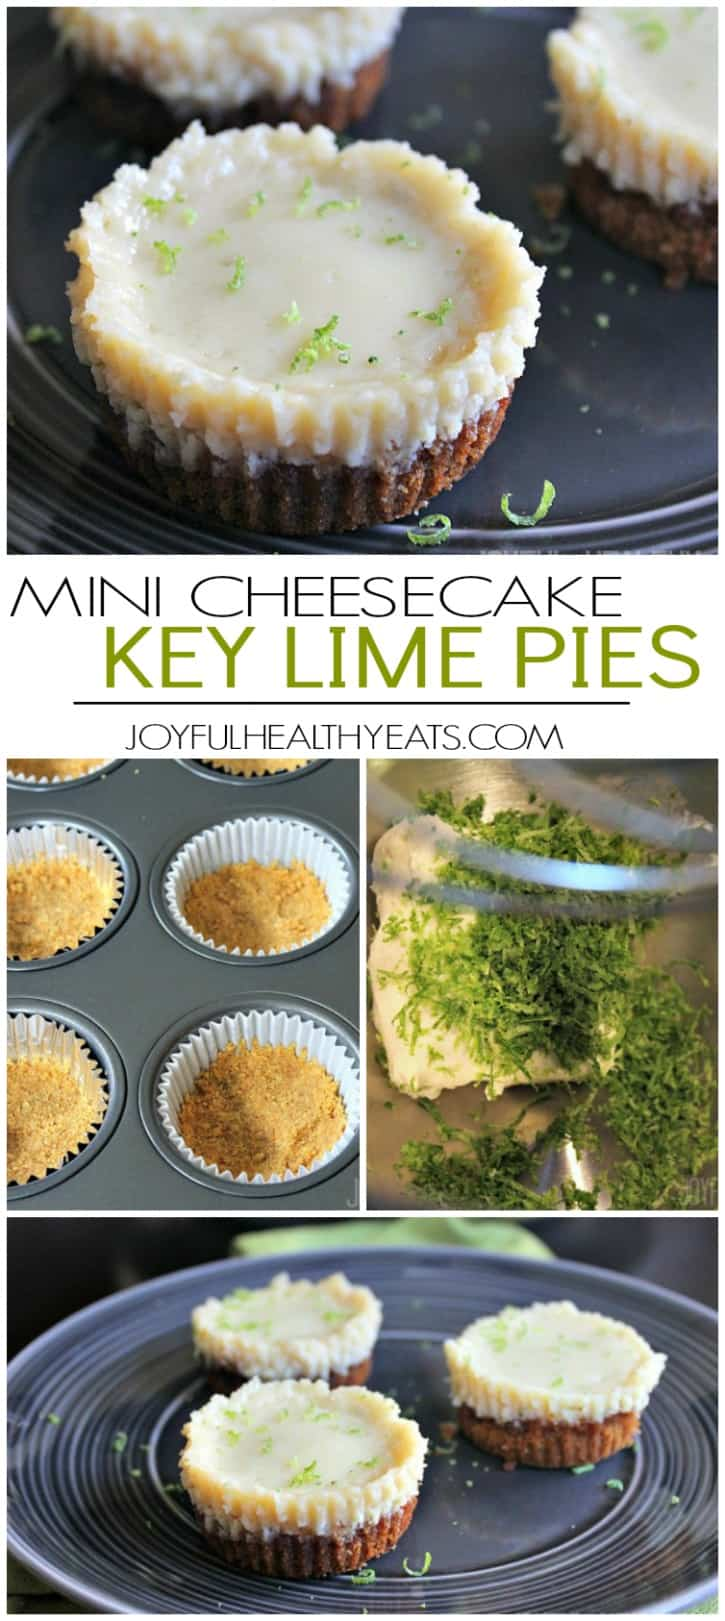 Easy to make Mini Cheesecake Key Lime Pie Bites, done in 30 minutes. The perfect bite size dessert!| joyfulhealthyeats.com #recipes